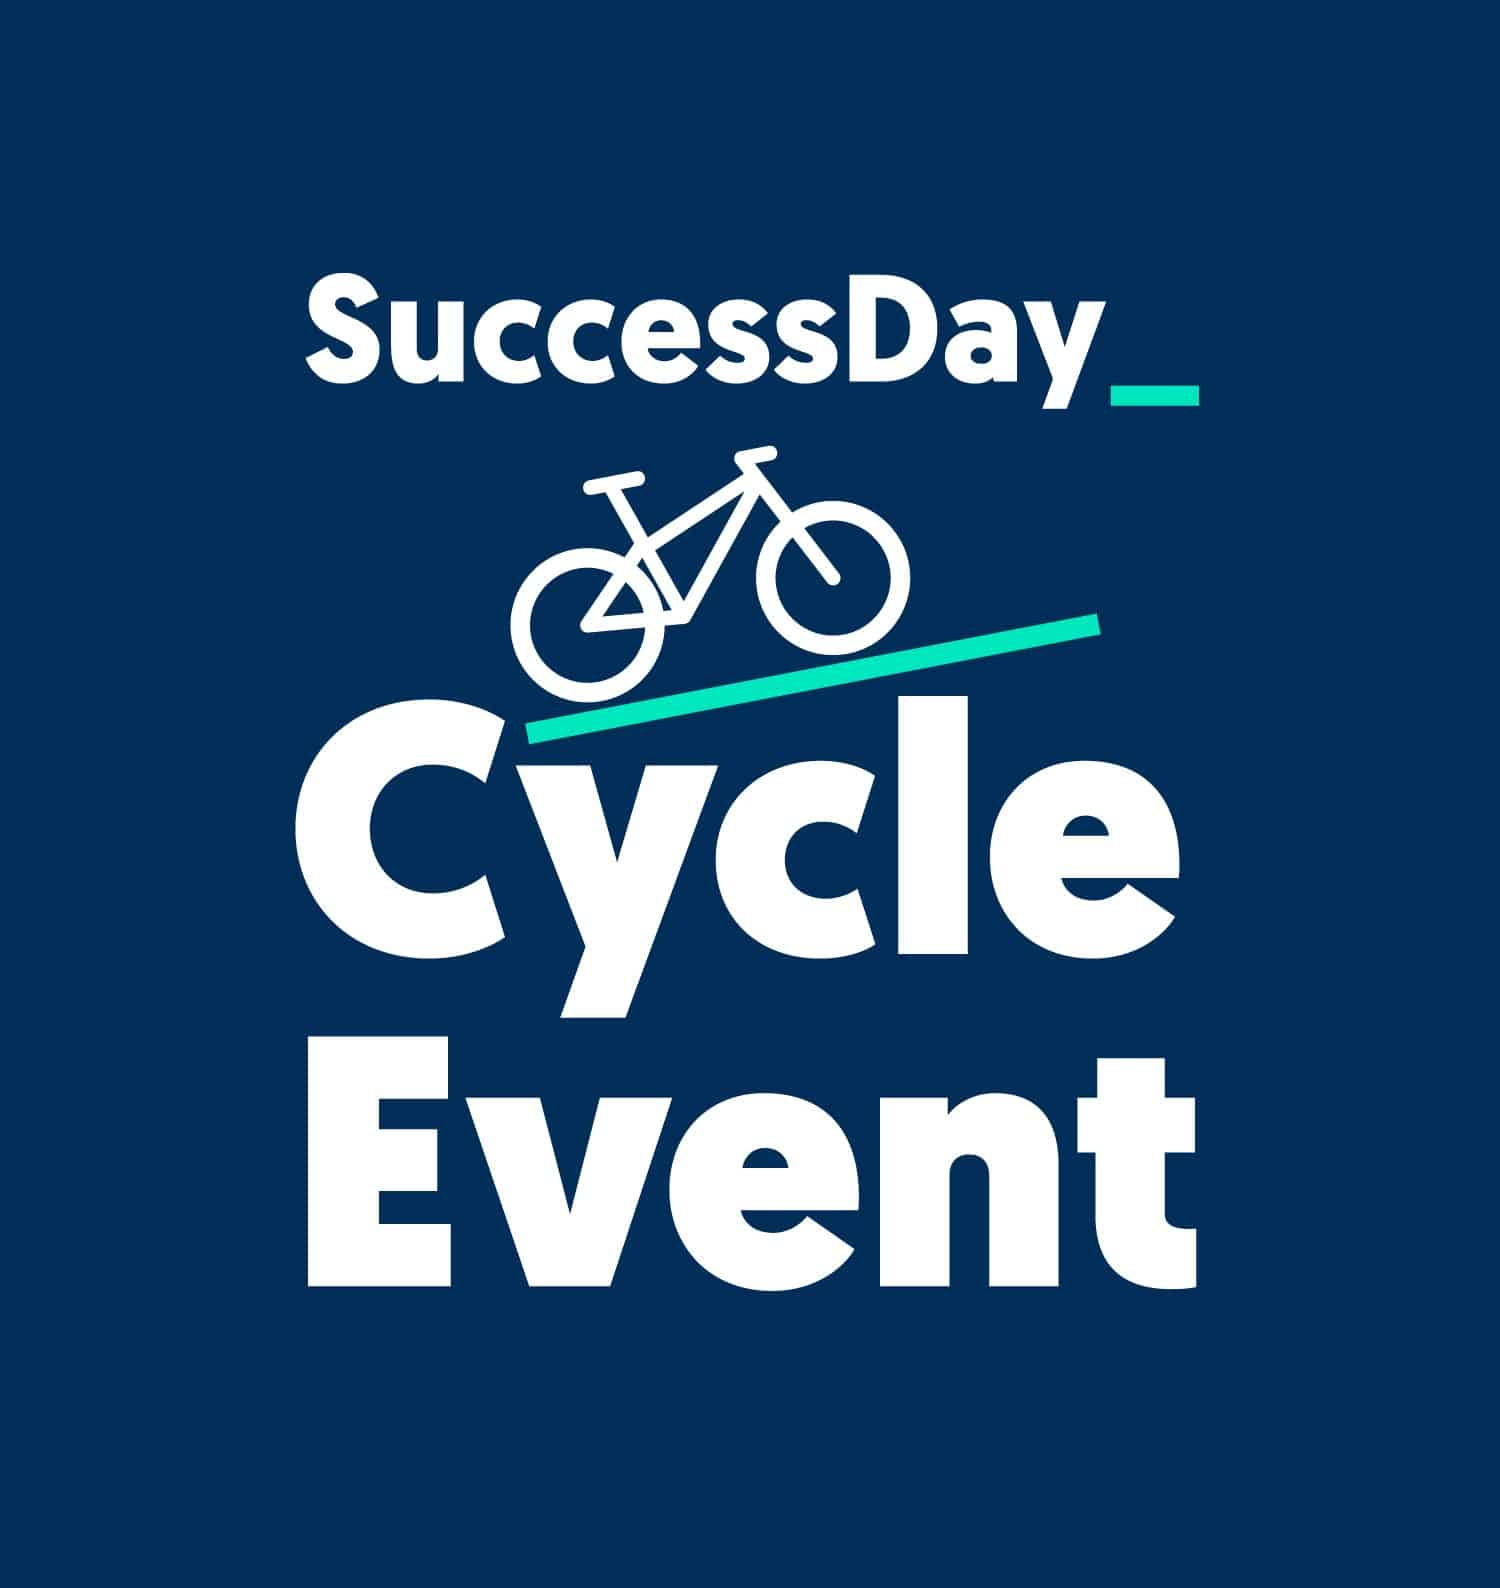 SuccessDay Cycle Event